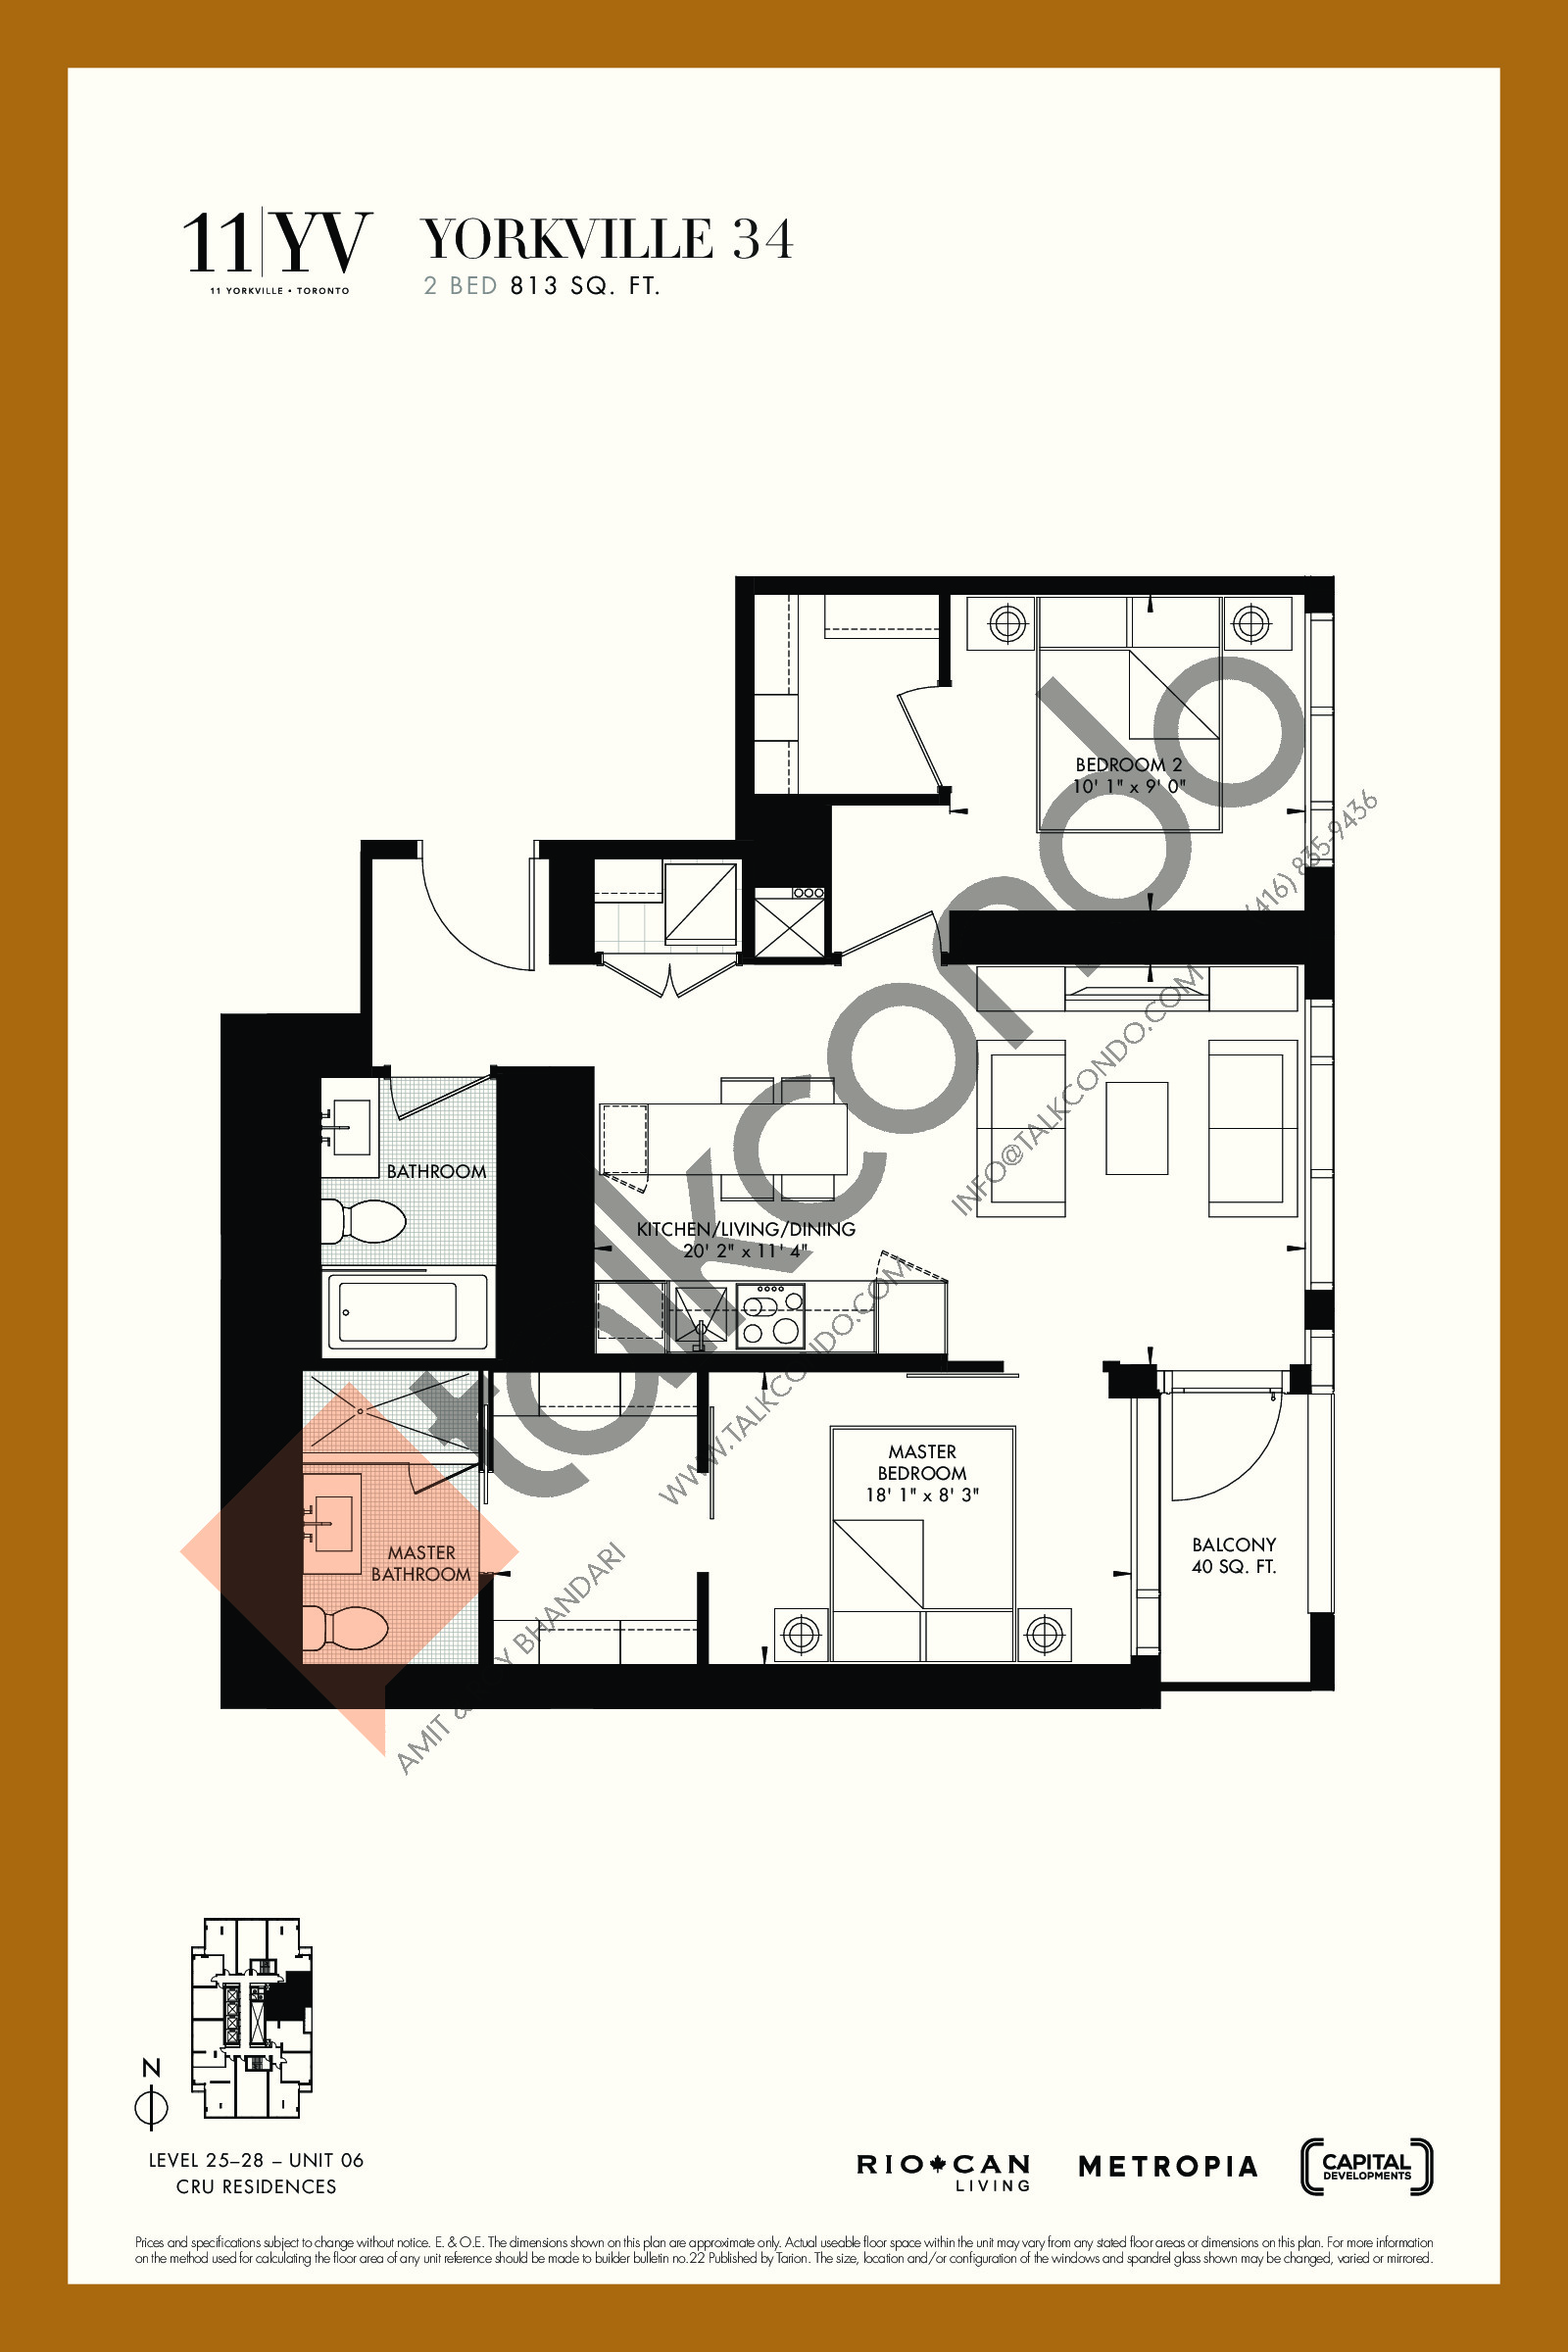 Yorkville 34 Floor Plan at 11YV Condos - 813 sq.ft